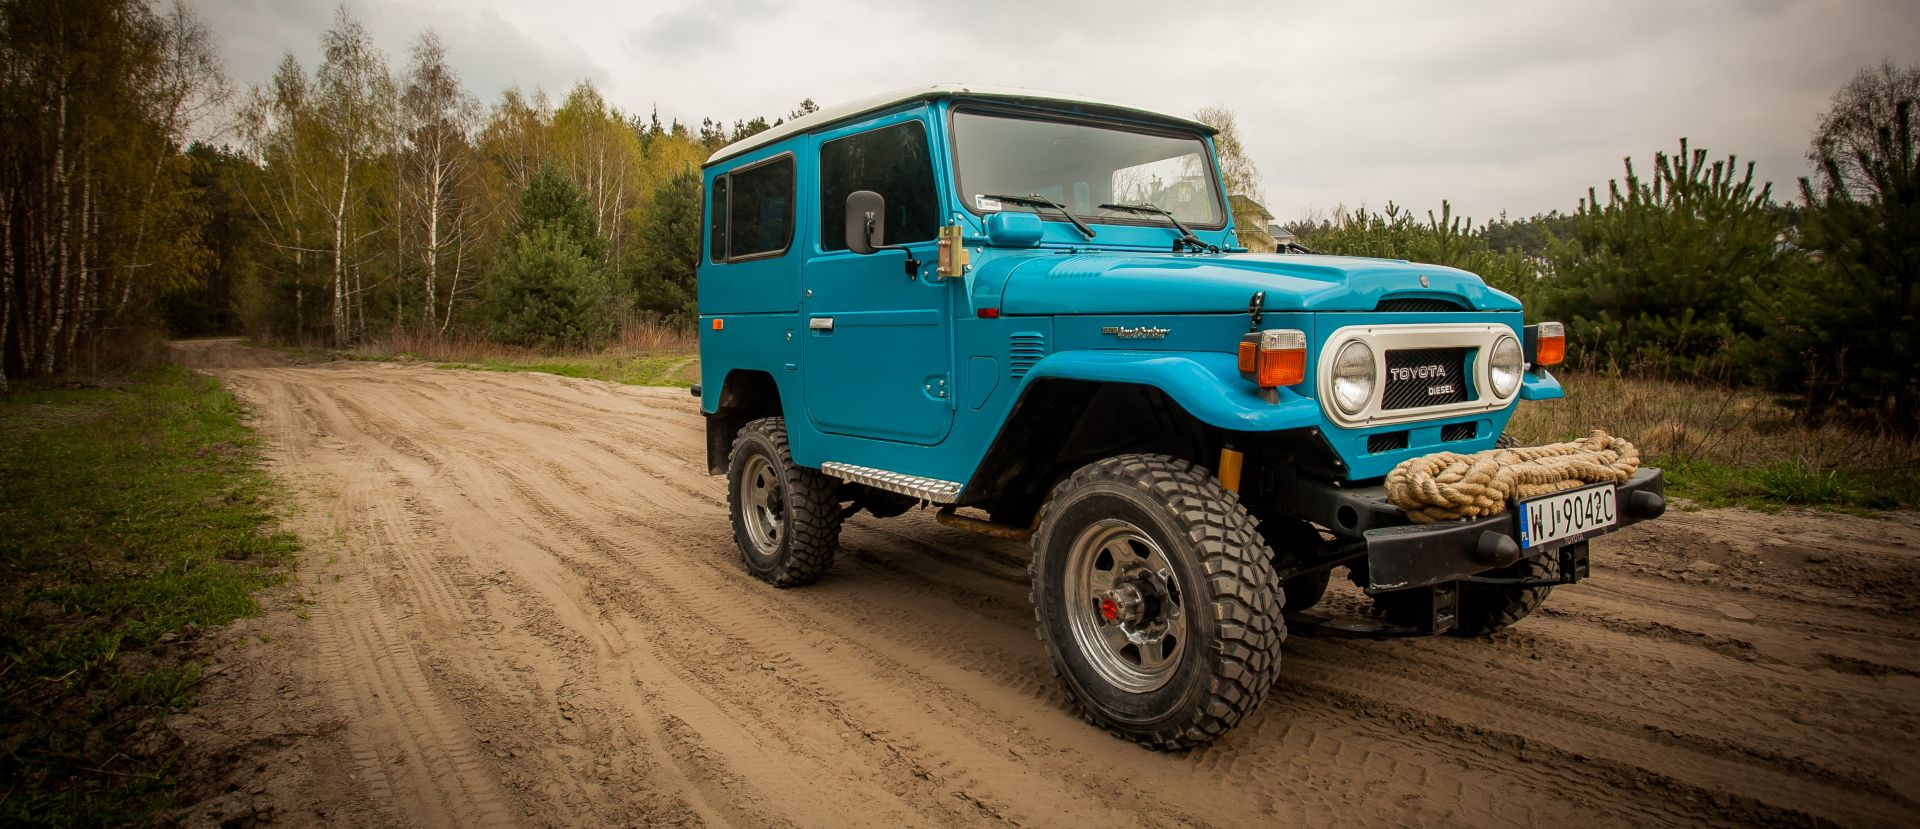 Land Cruiser BJ 40 - Emsi